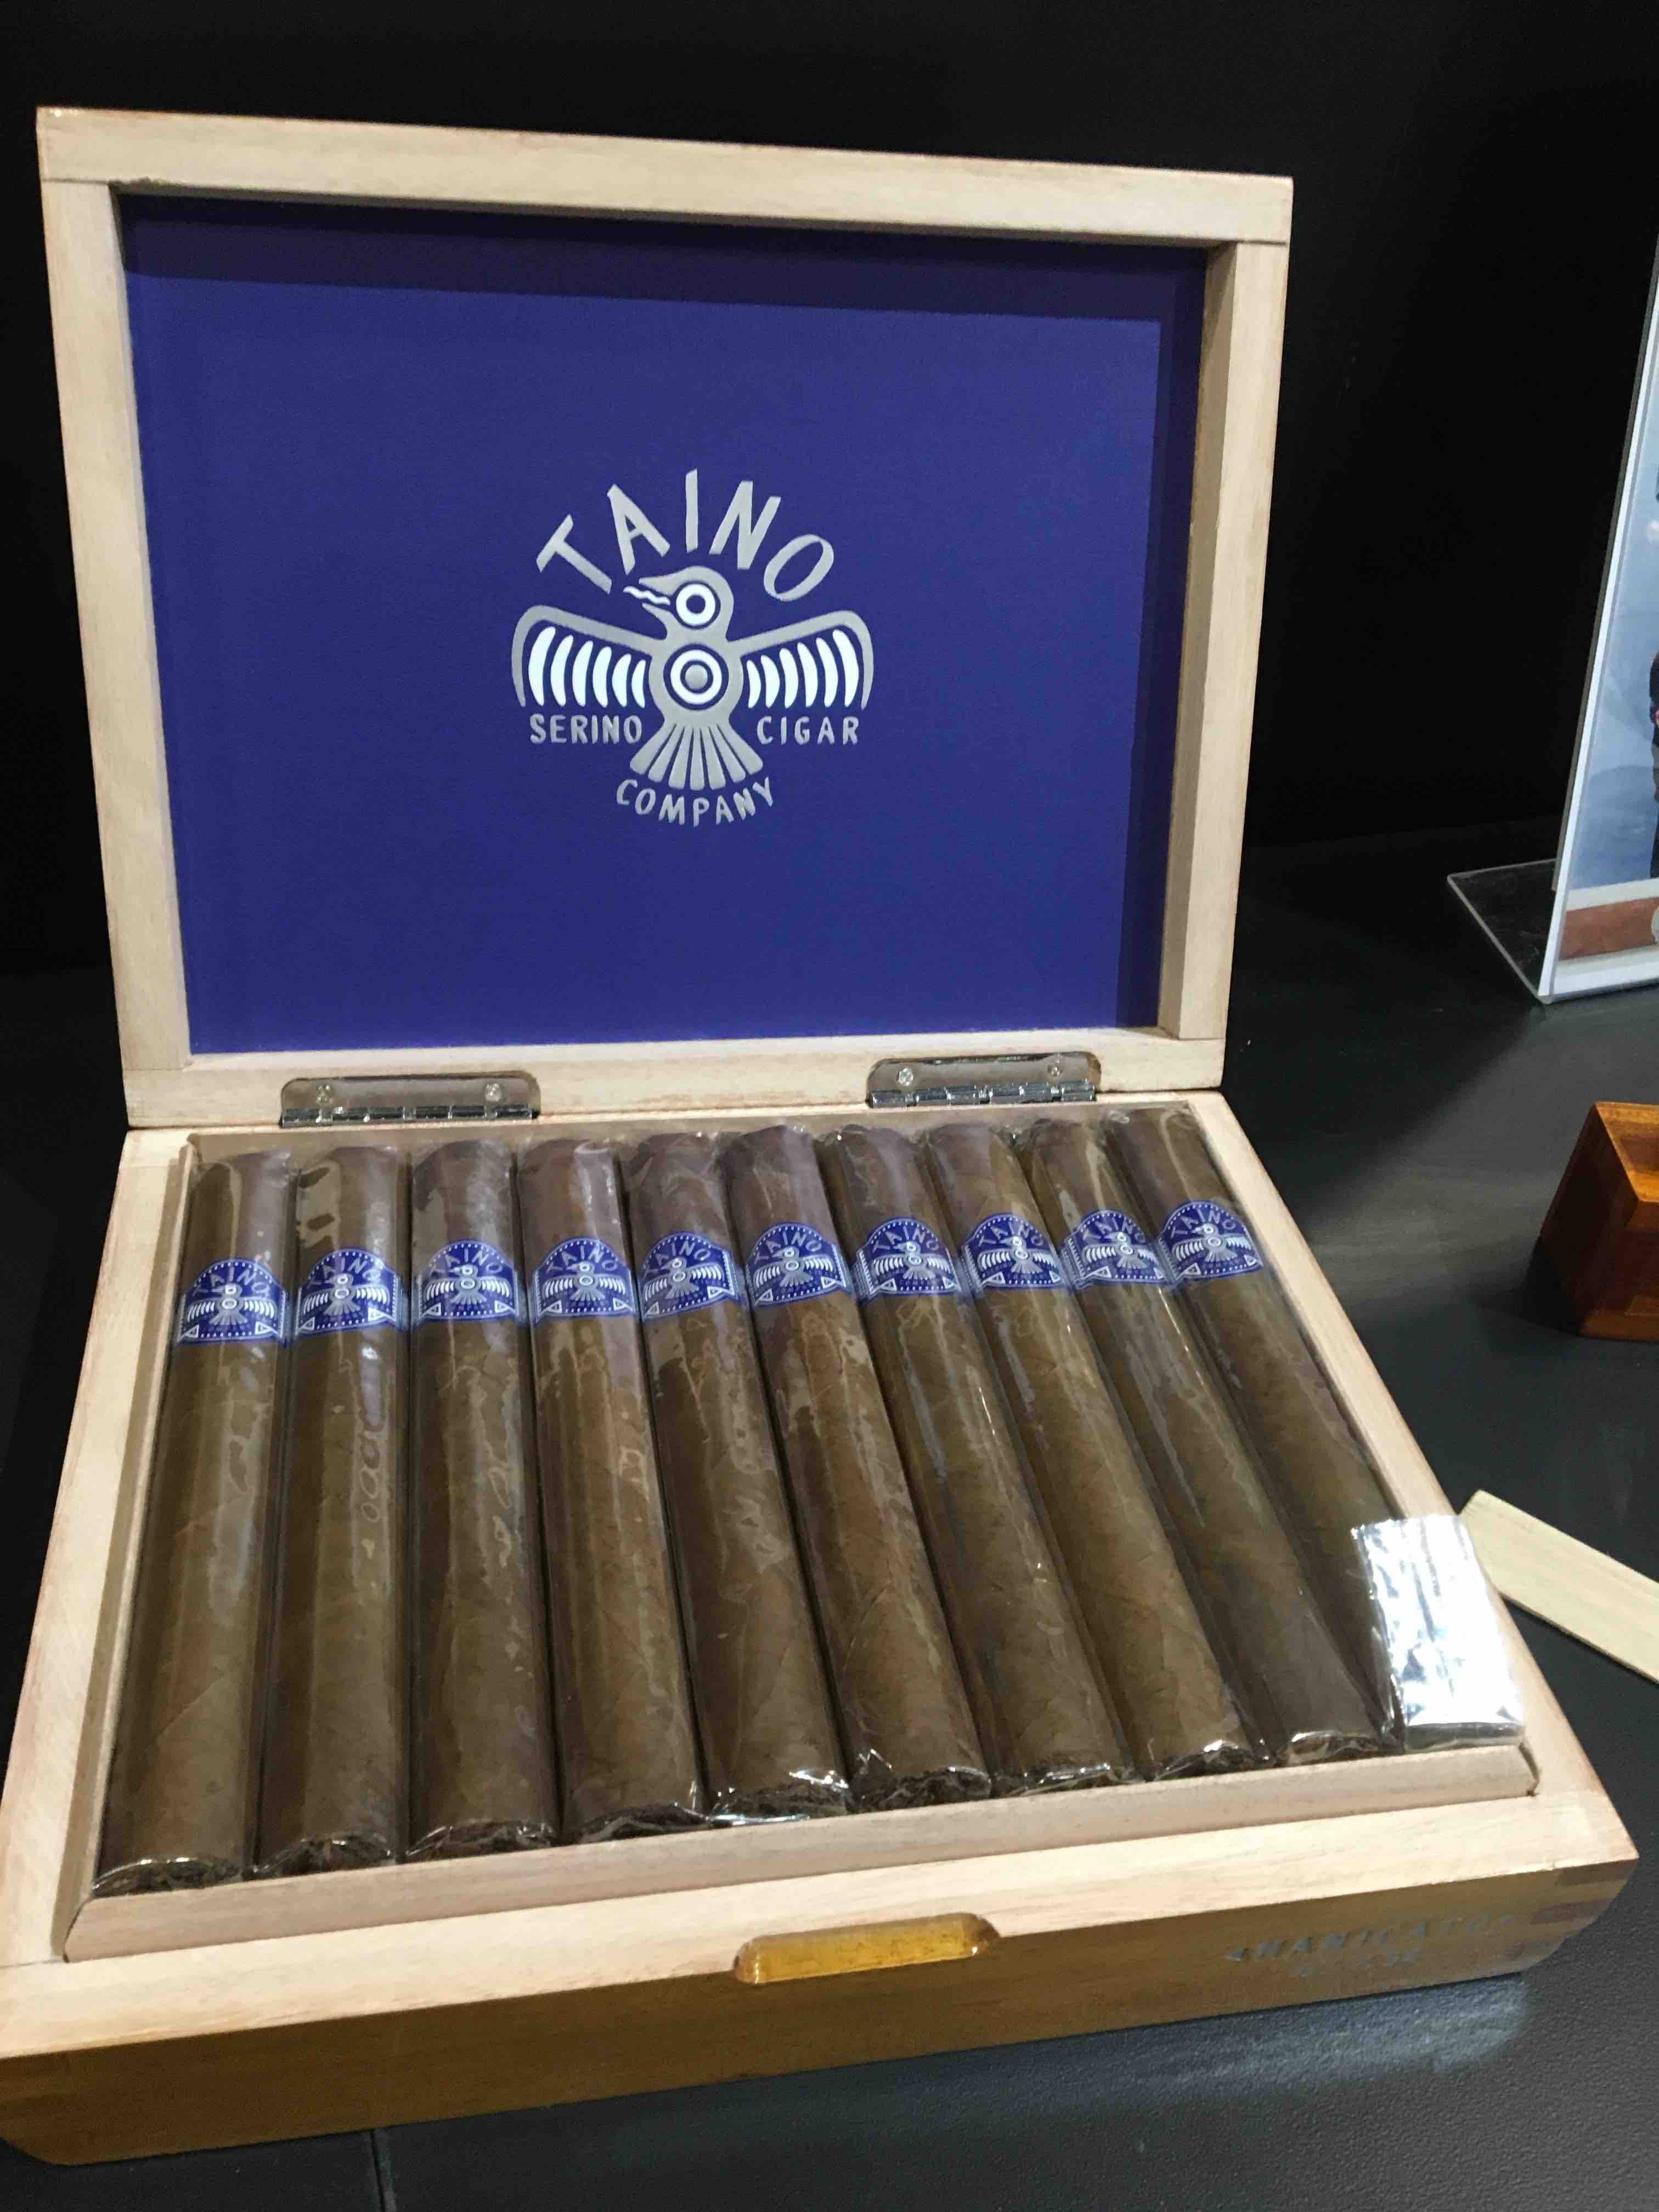 Cigar News: Serino Taino Heritage Launched at 2019 IPCPR Trade Show